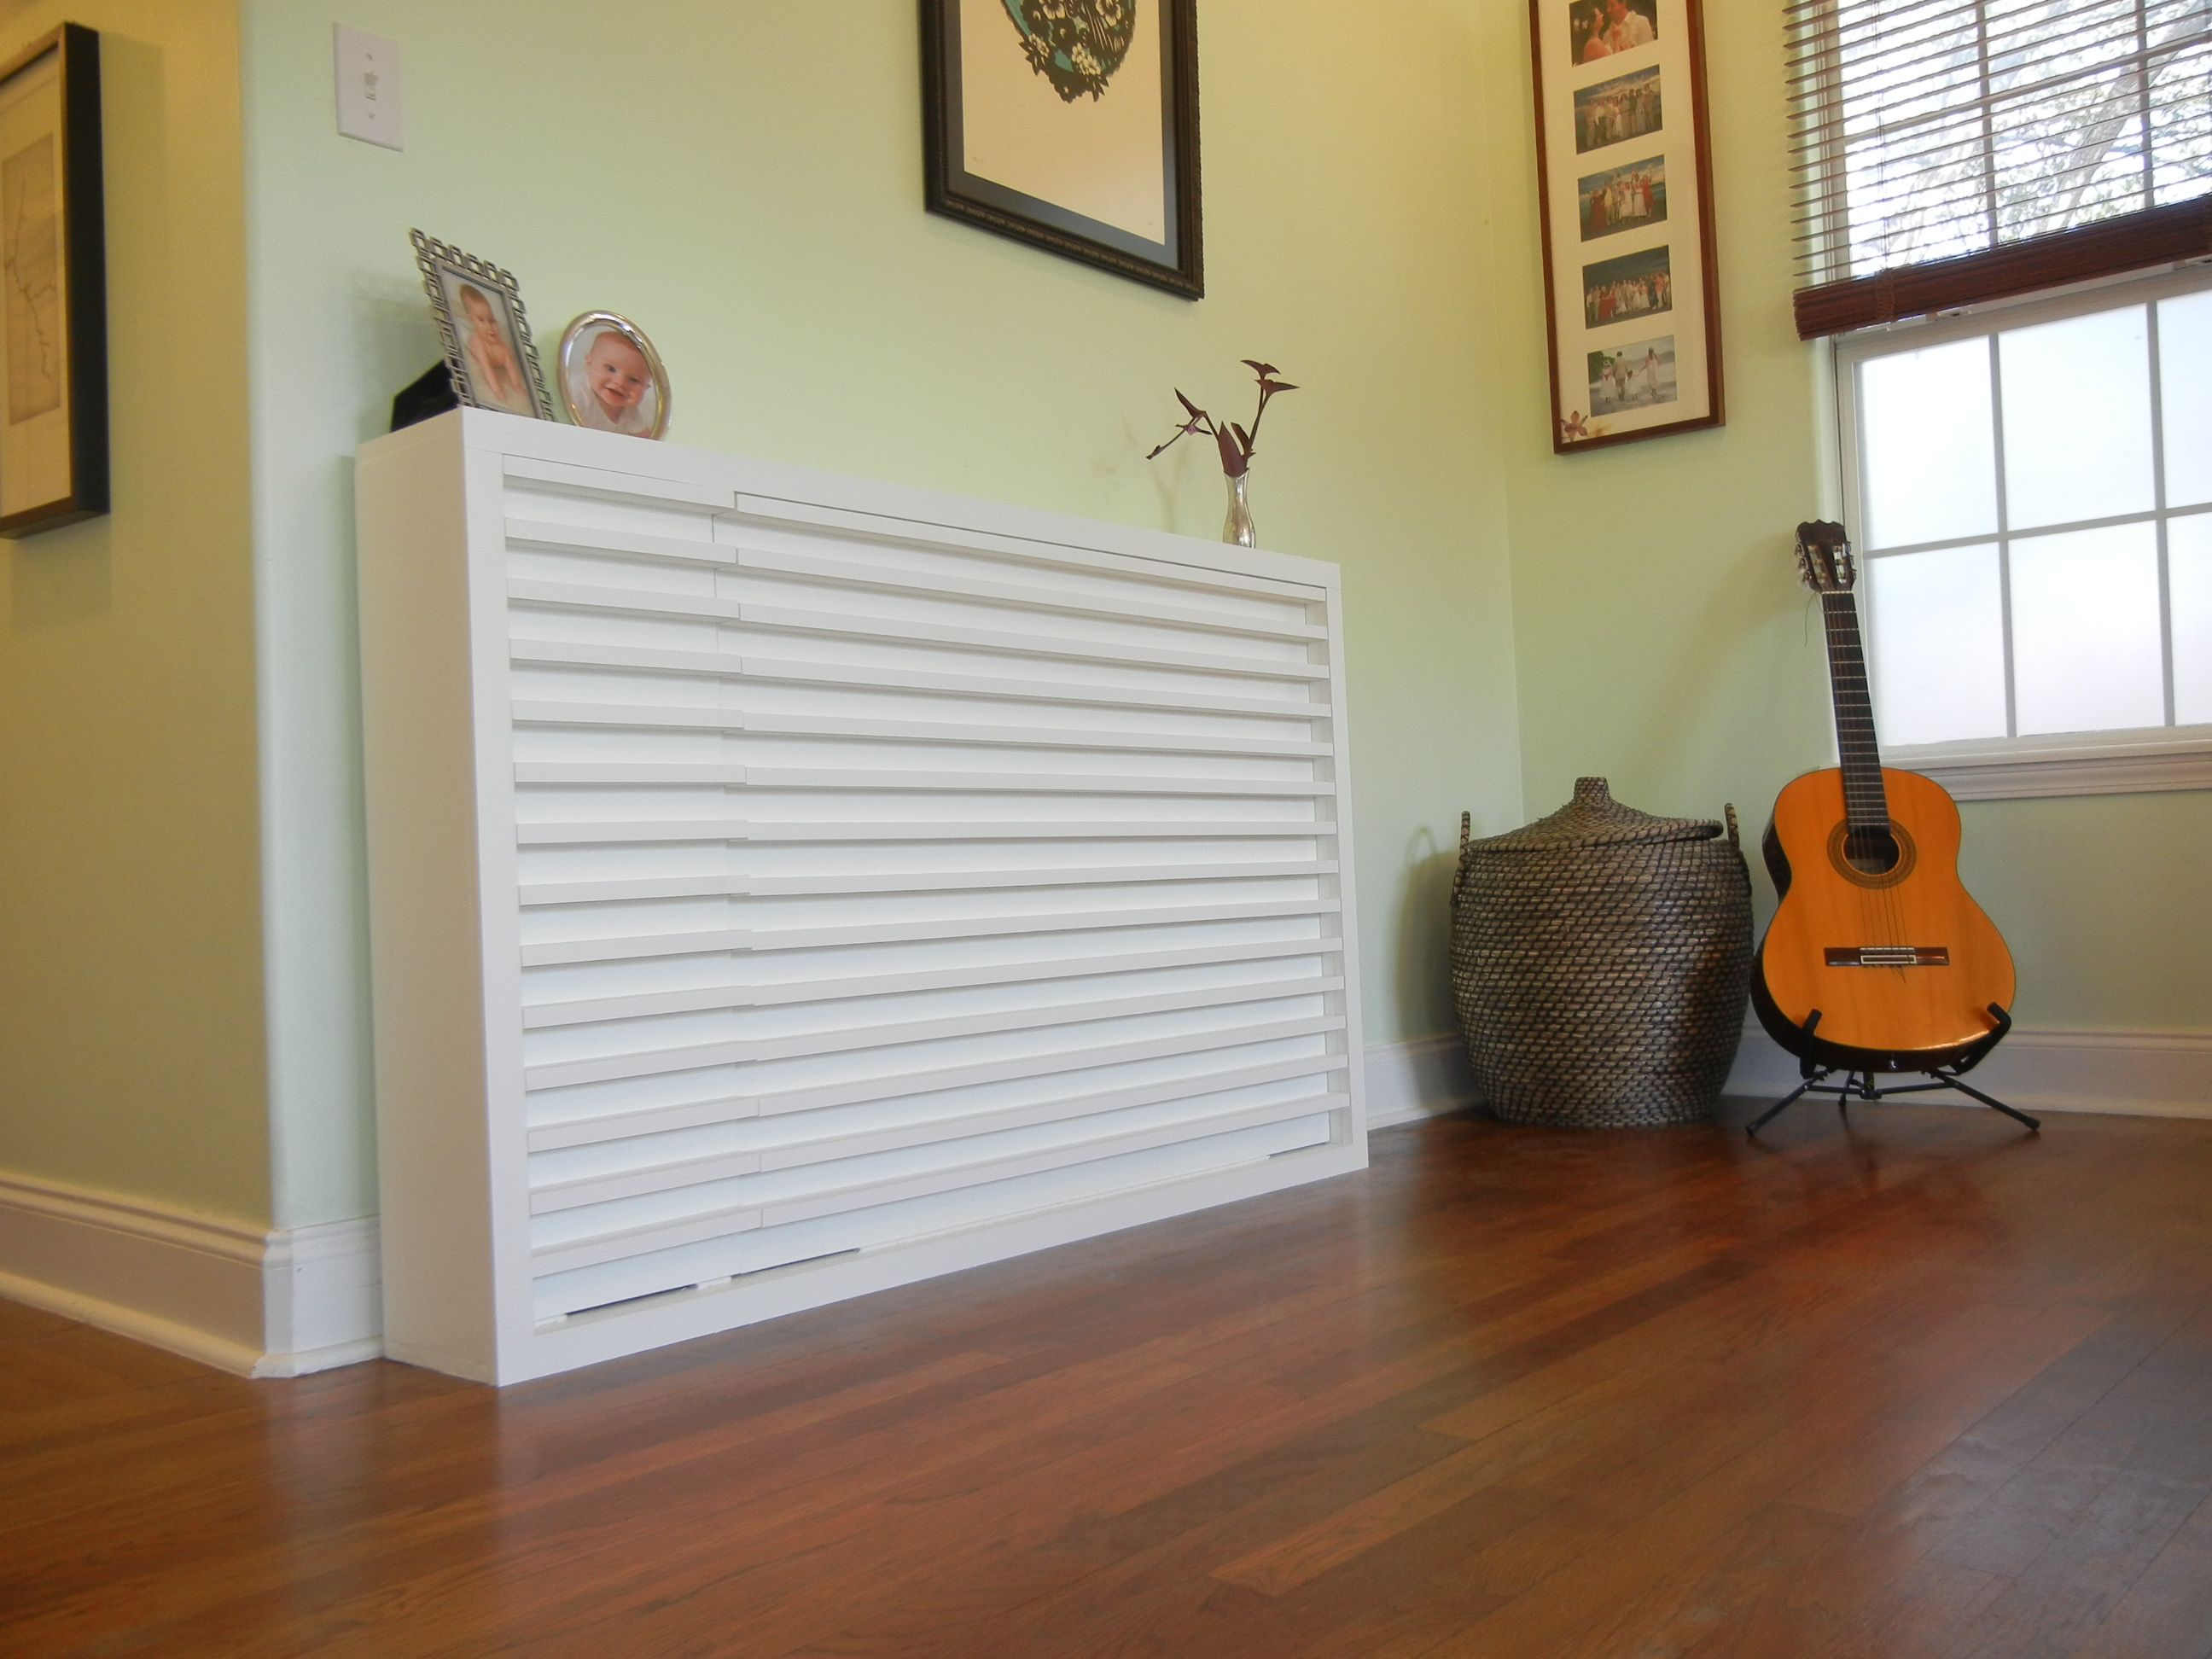 Bedroom. Simple Wooden Floor And White Murphy Bed On The